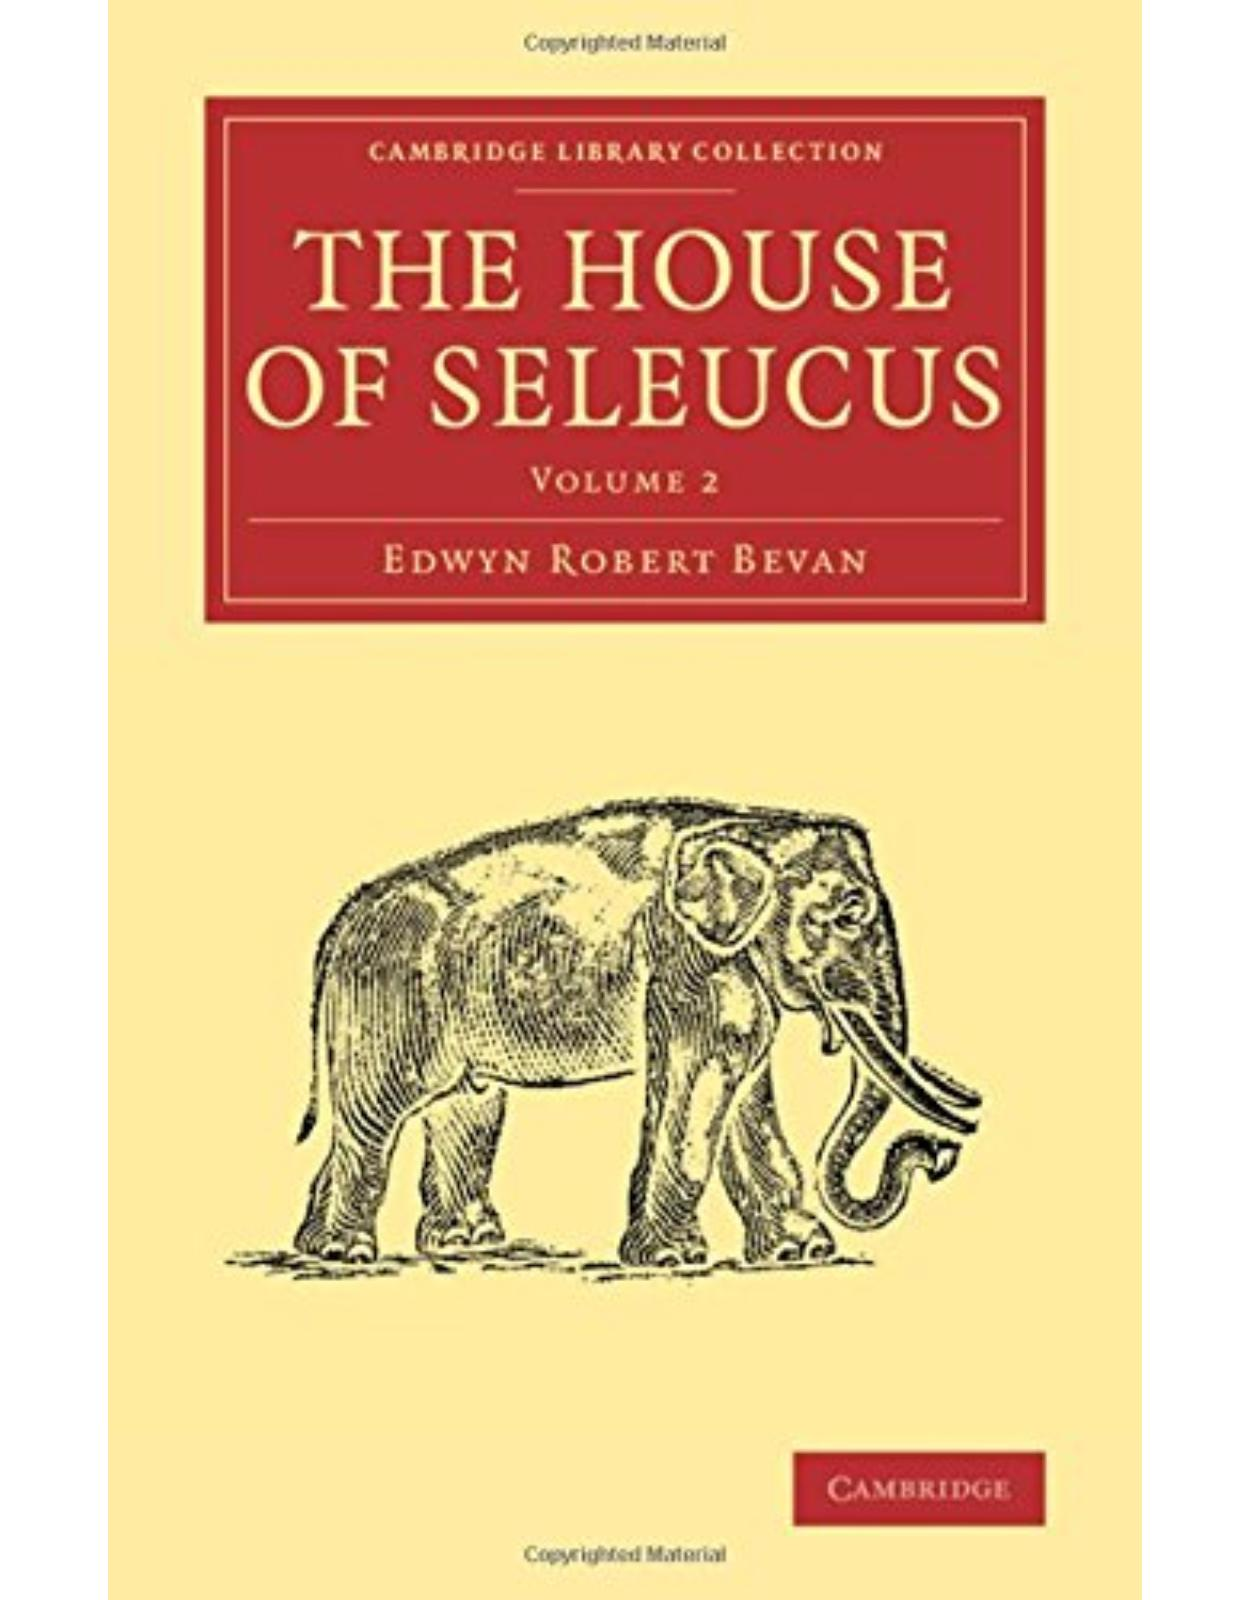 The House of Seleucus: Volume 2 (Cambridge Library Collection - Classics)